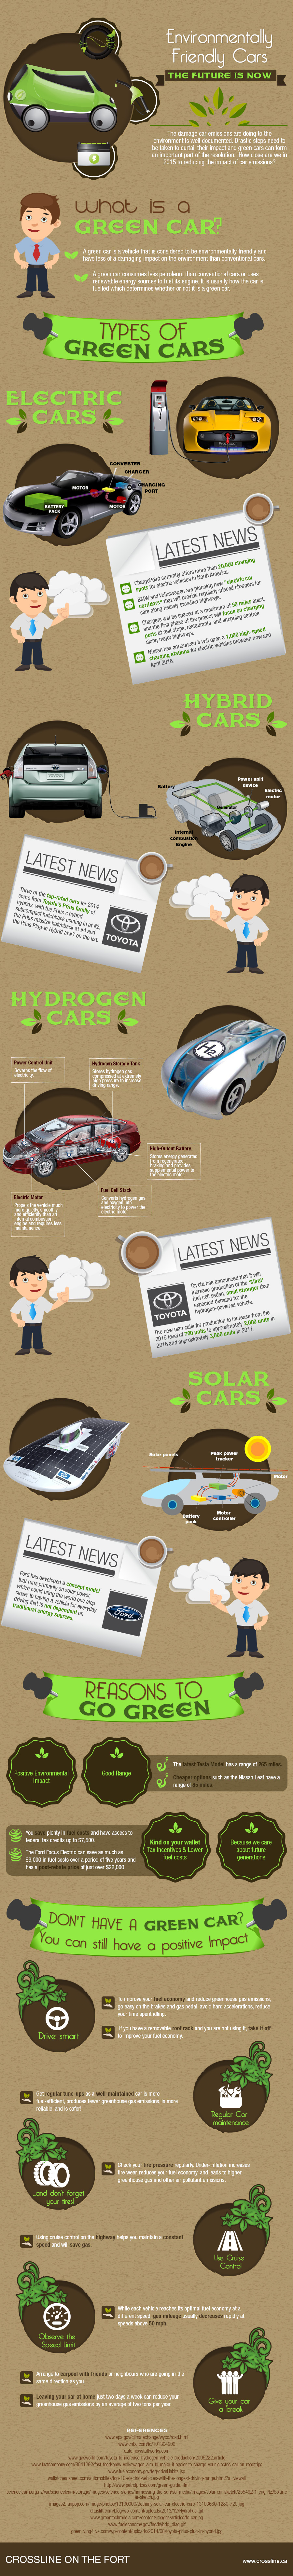 infographic: types of green cars